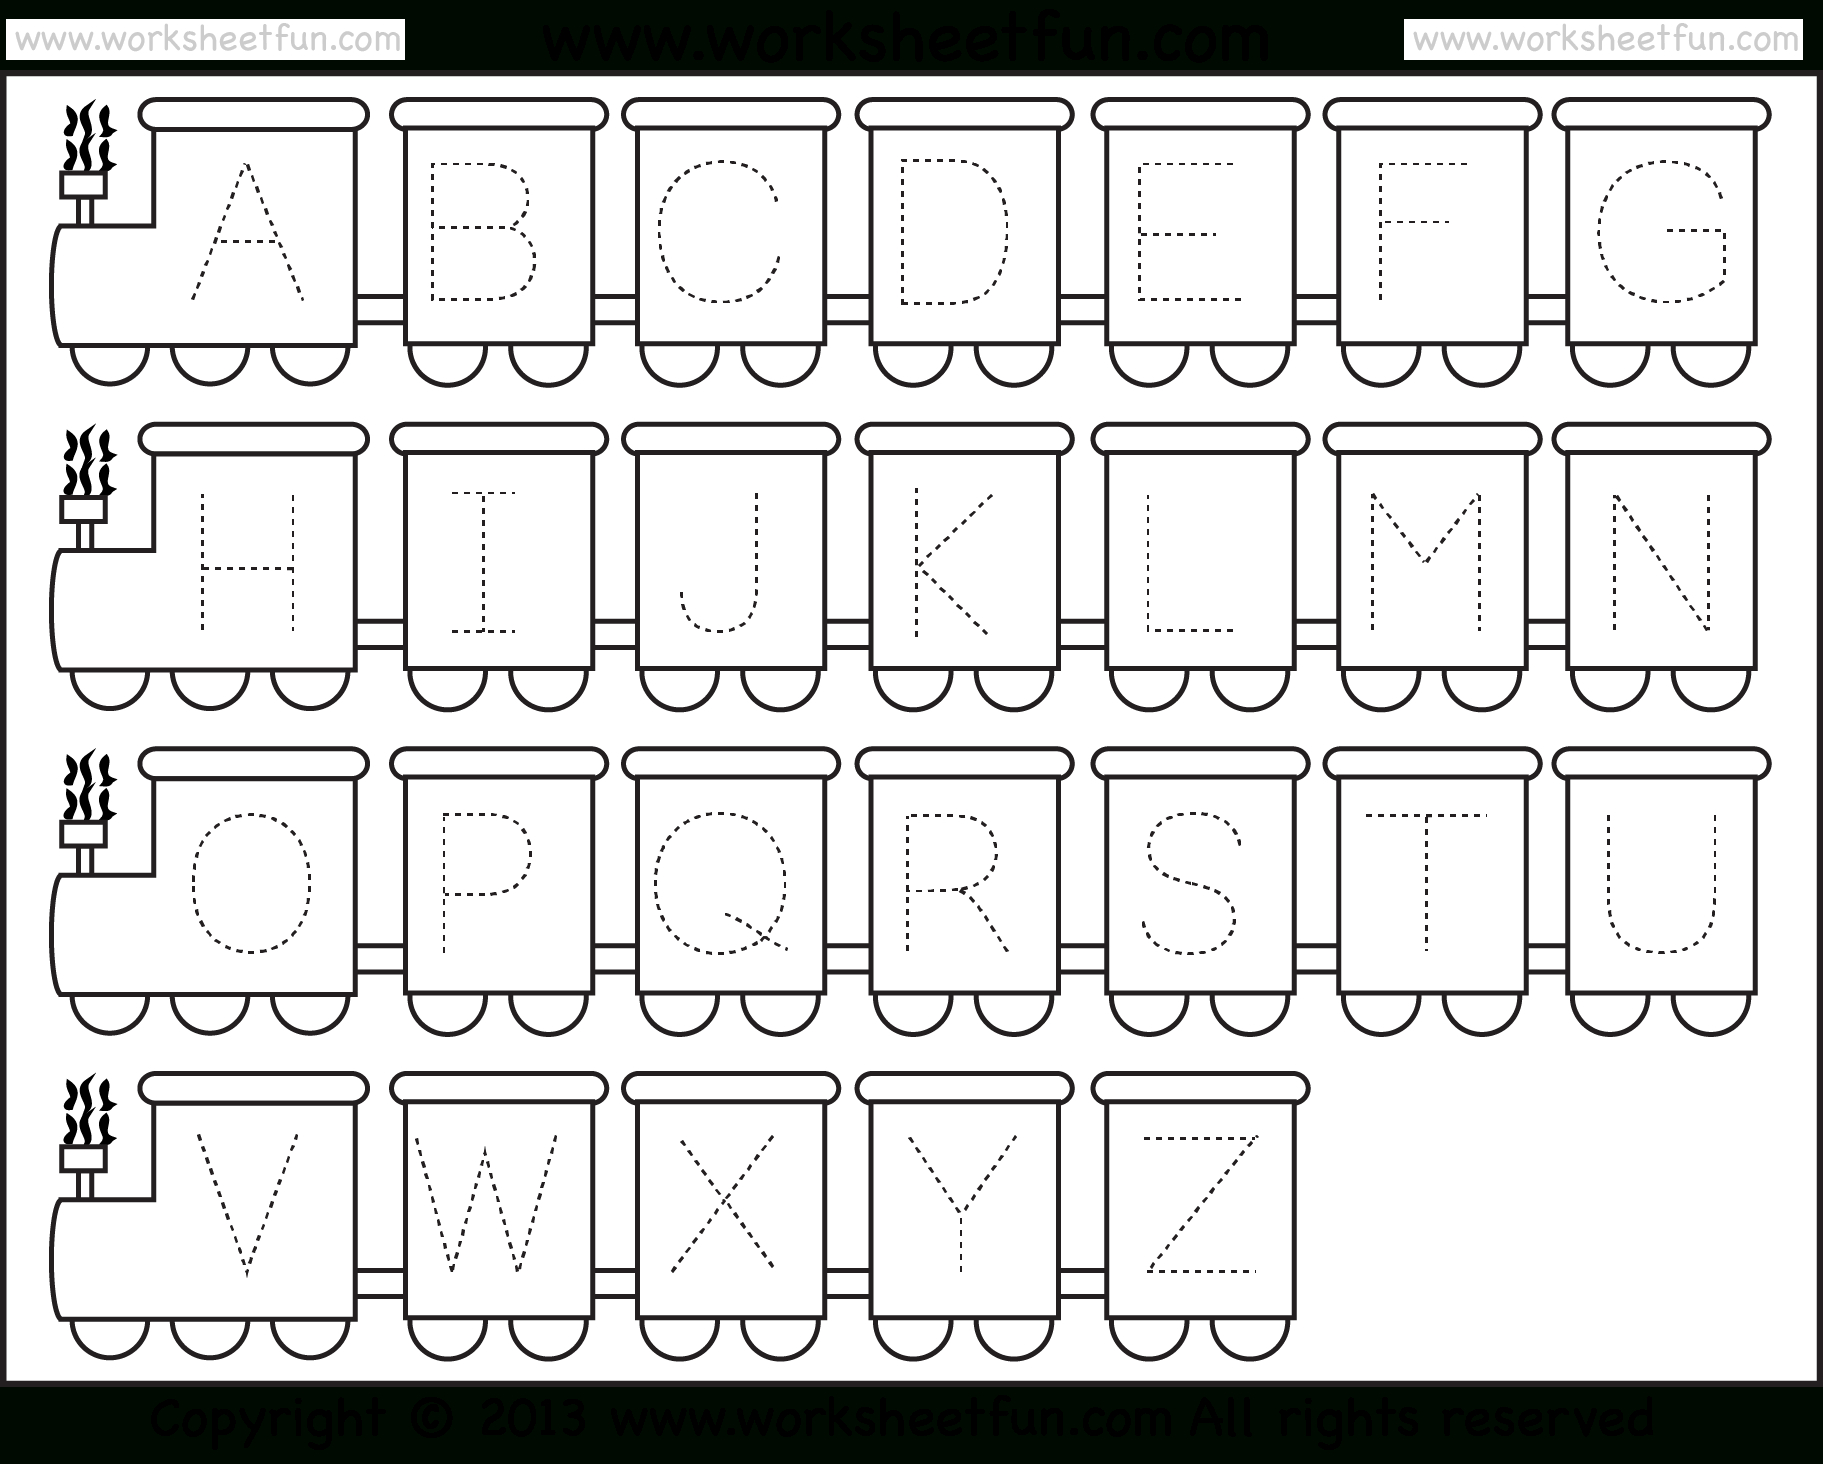 Letter Tracing Worksheet – Train Theme / Free Printable pertaining to Alphabet Tracing Pages Pdf